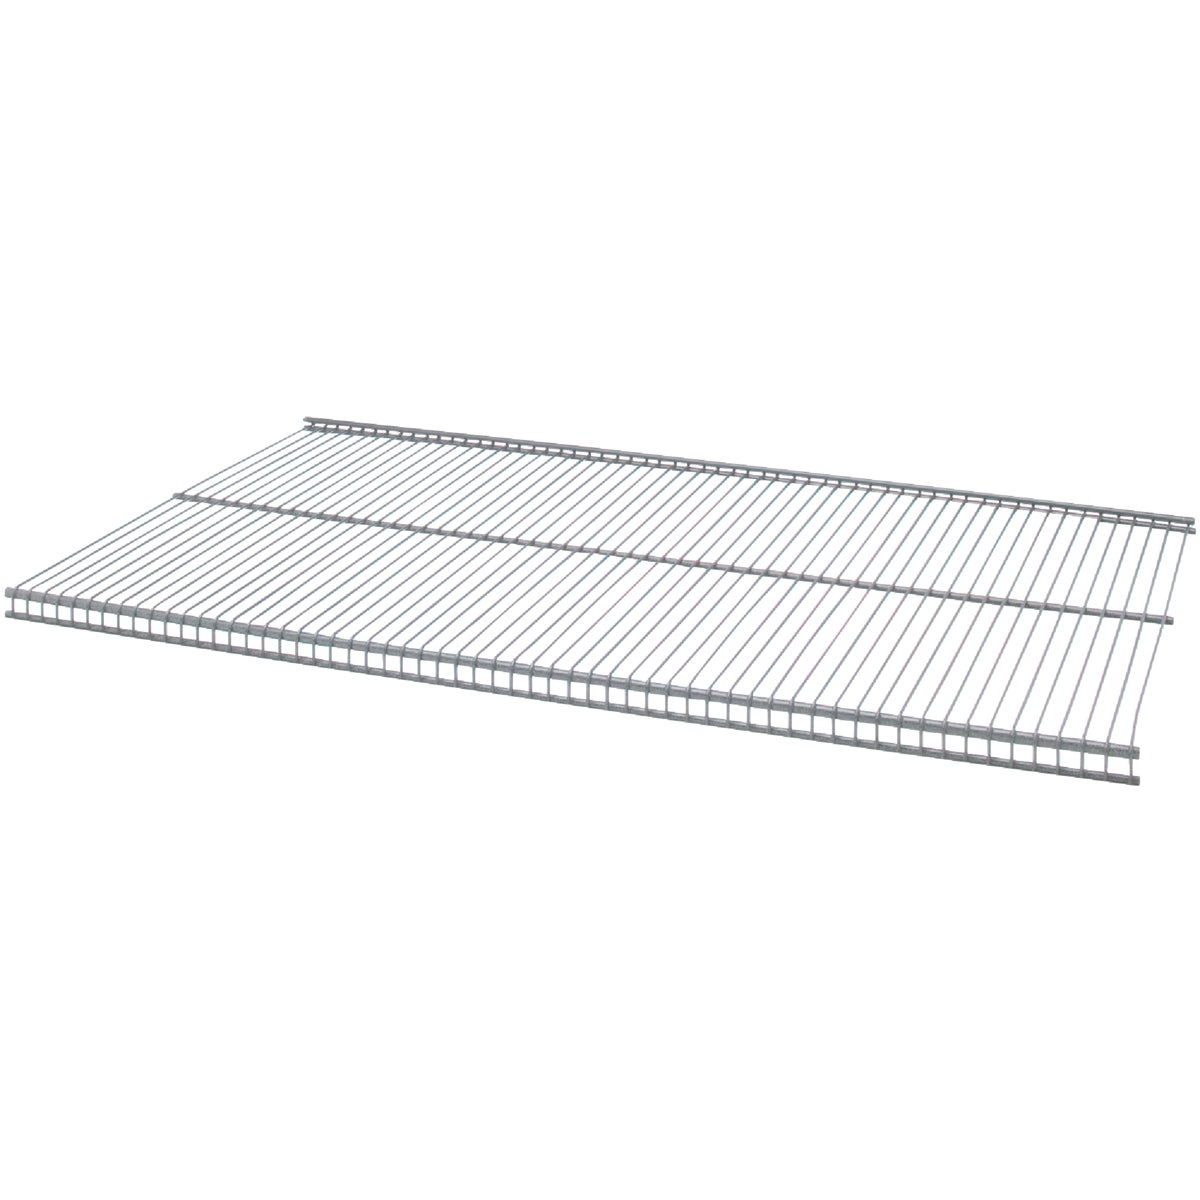 12X36 NKL PROFILE SHELF - 1813123645 by Schulte Corp